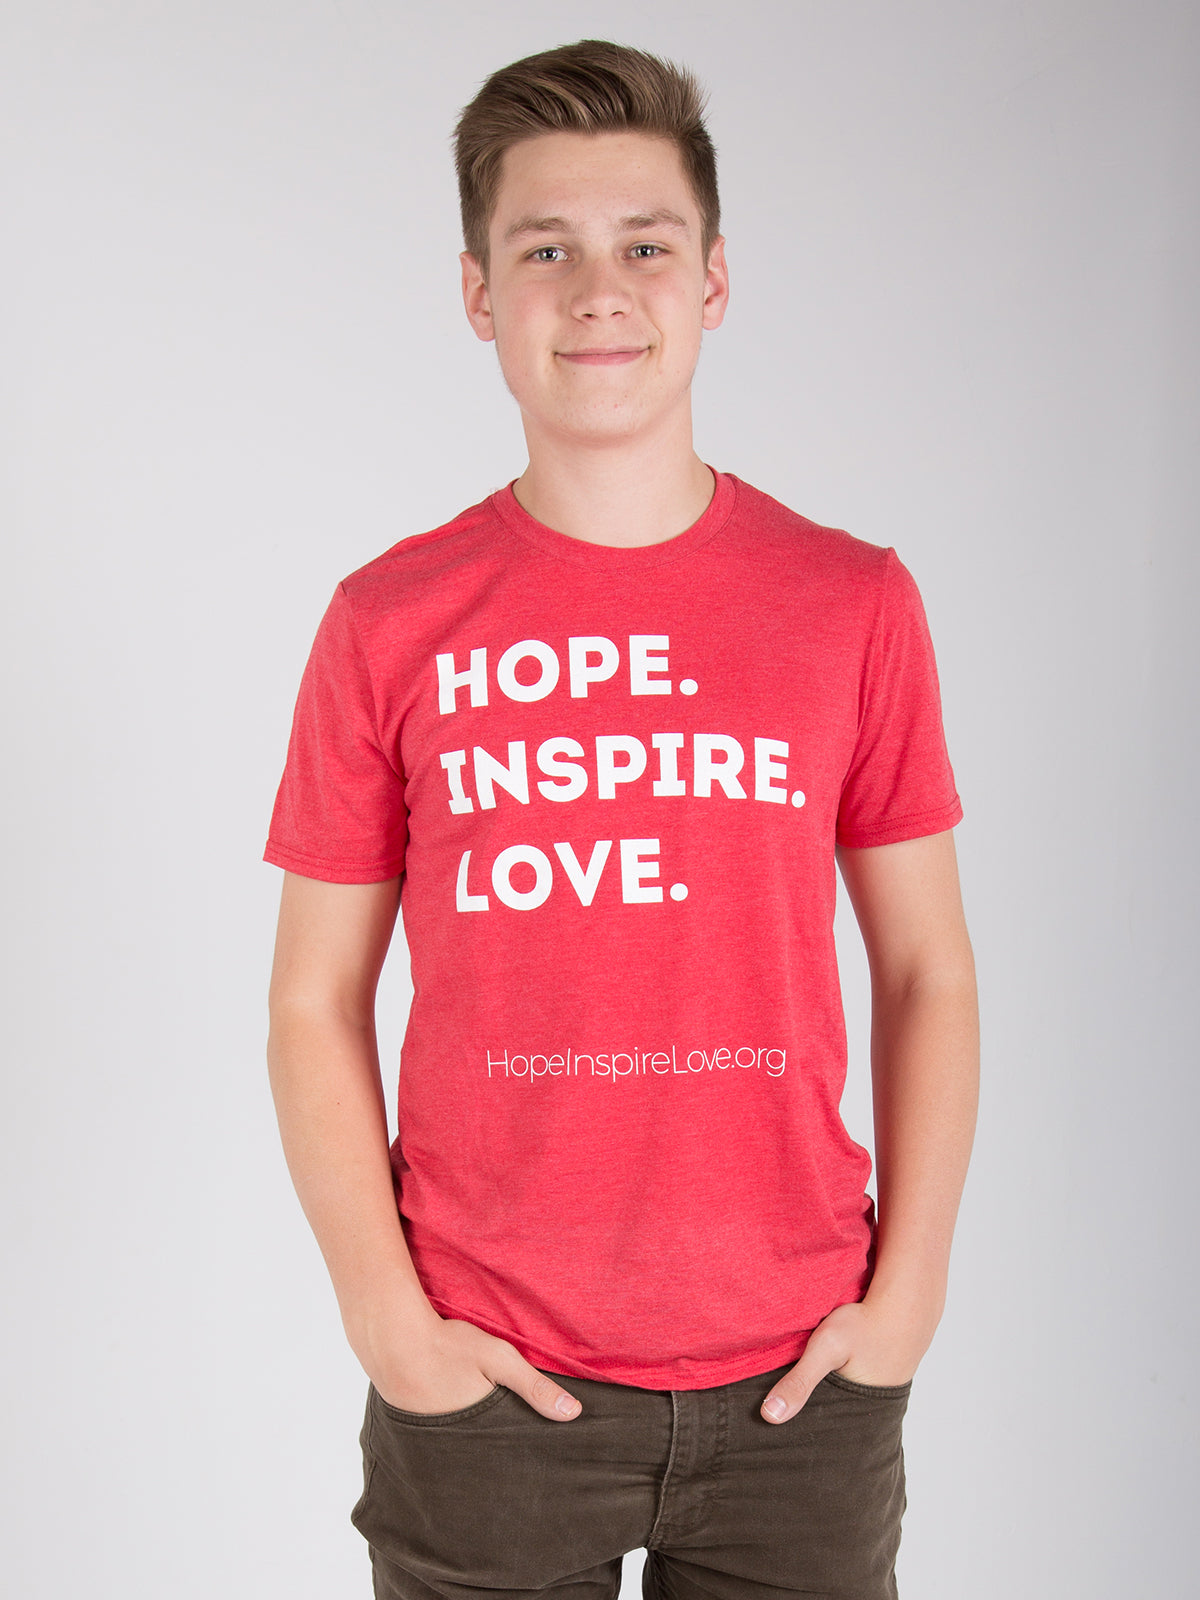 Hope Inspire Love - Short Sleeve T-Shirt - Heather Red - Unisex